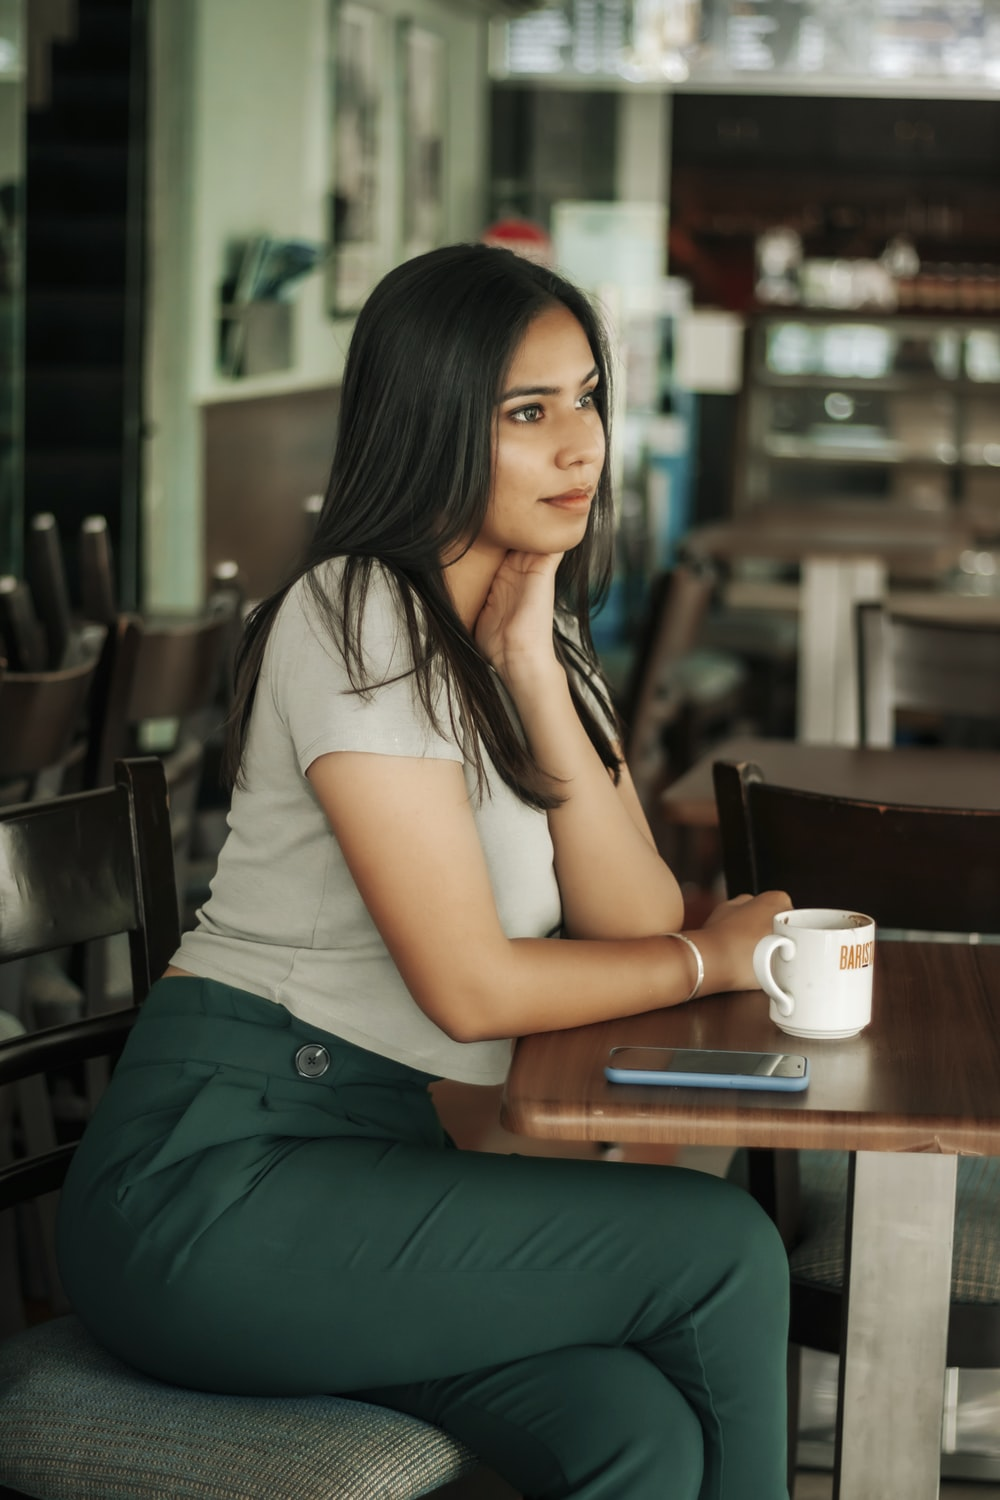 woman in white t-shirt and green skirt sitting on chair holding white ceramic mug